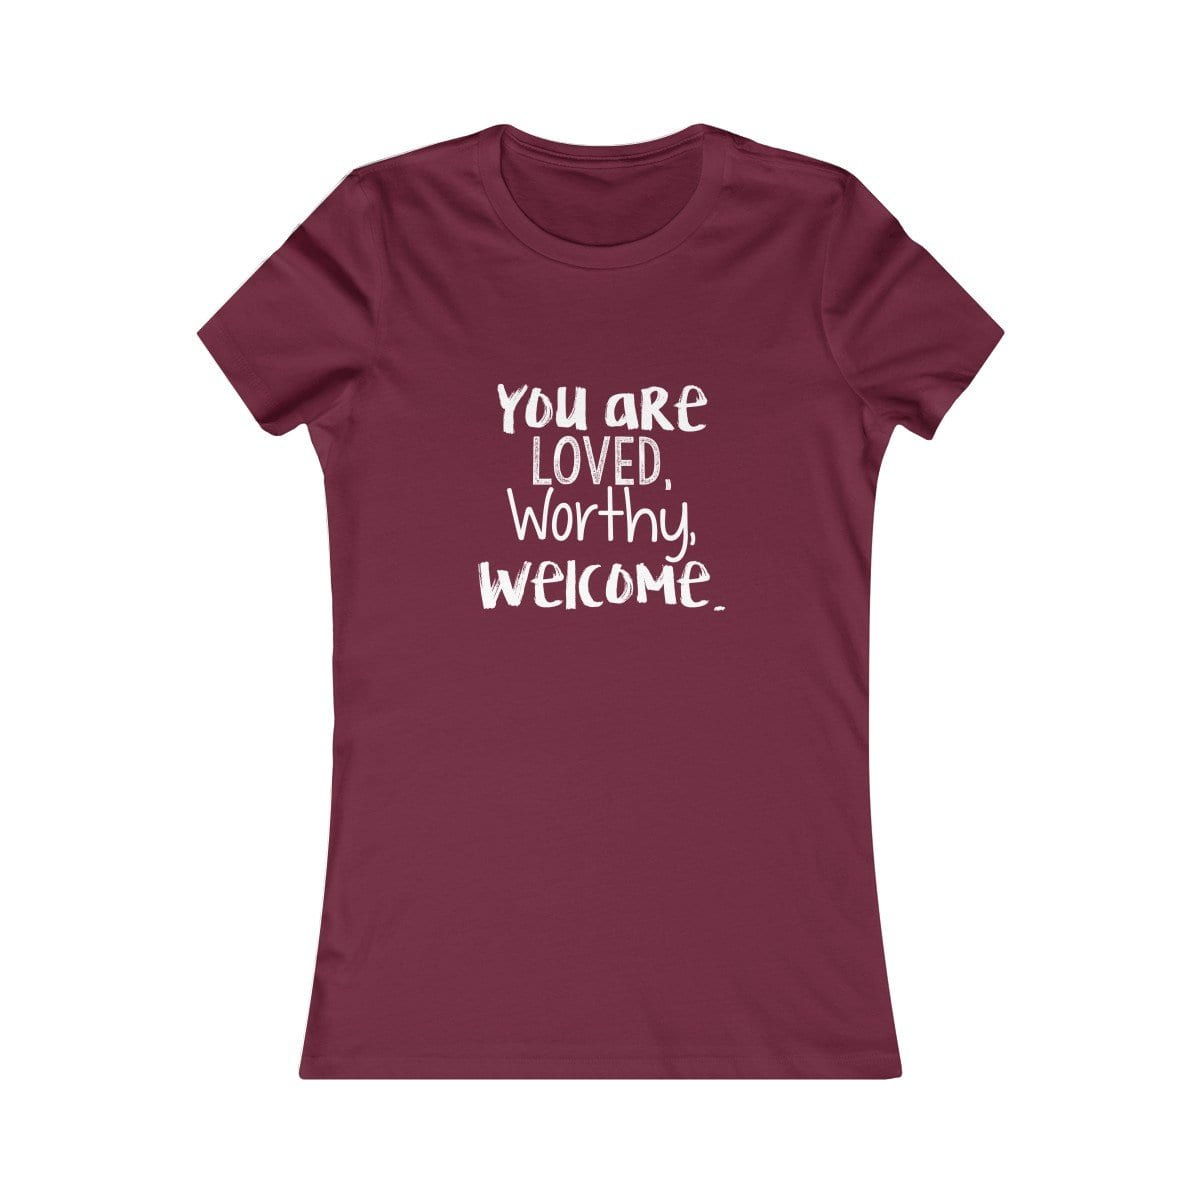 Teacher Shirts to wear to your classroom to allow you to inspire and have a cool teacher themed shirt while being comfortable on the job. A perfect pair to create a teacher outfit for your teacher wardrobe. Work Comfortably ♡ Teach Confidently ♡ Have the Coolest Teacher T-Shirt. A perfect solution for a busy teacher who needs to pick an outfit quick! Teacher Shirts | Art Teacher Shirts | Teacher Tees | Teacher Outfit | Teacher Wardrobe | Teacher daily | Teacher Lifestyle | Teacher Shopping | Teacher in Training | New Teacher | Ms Artastic's Collection | Ms Artastic | Art Teacher Wardrobe | Art Teacher Outfit | Teacher Mugs | Teacher Accessories | Back to School Teacher Outfit